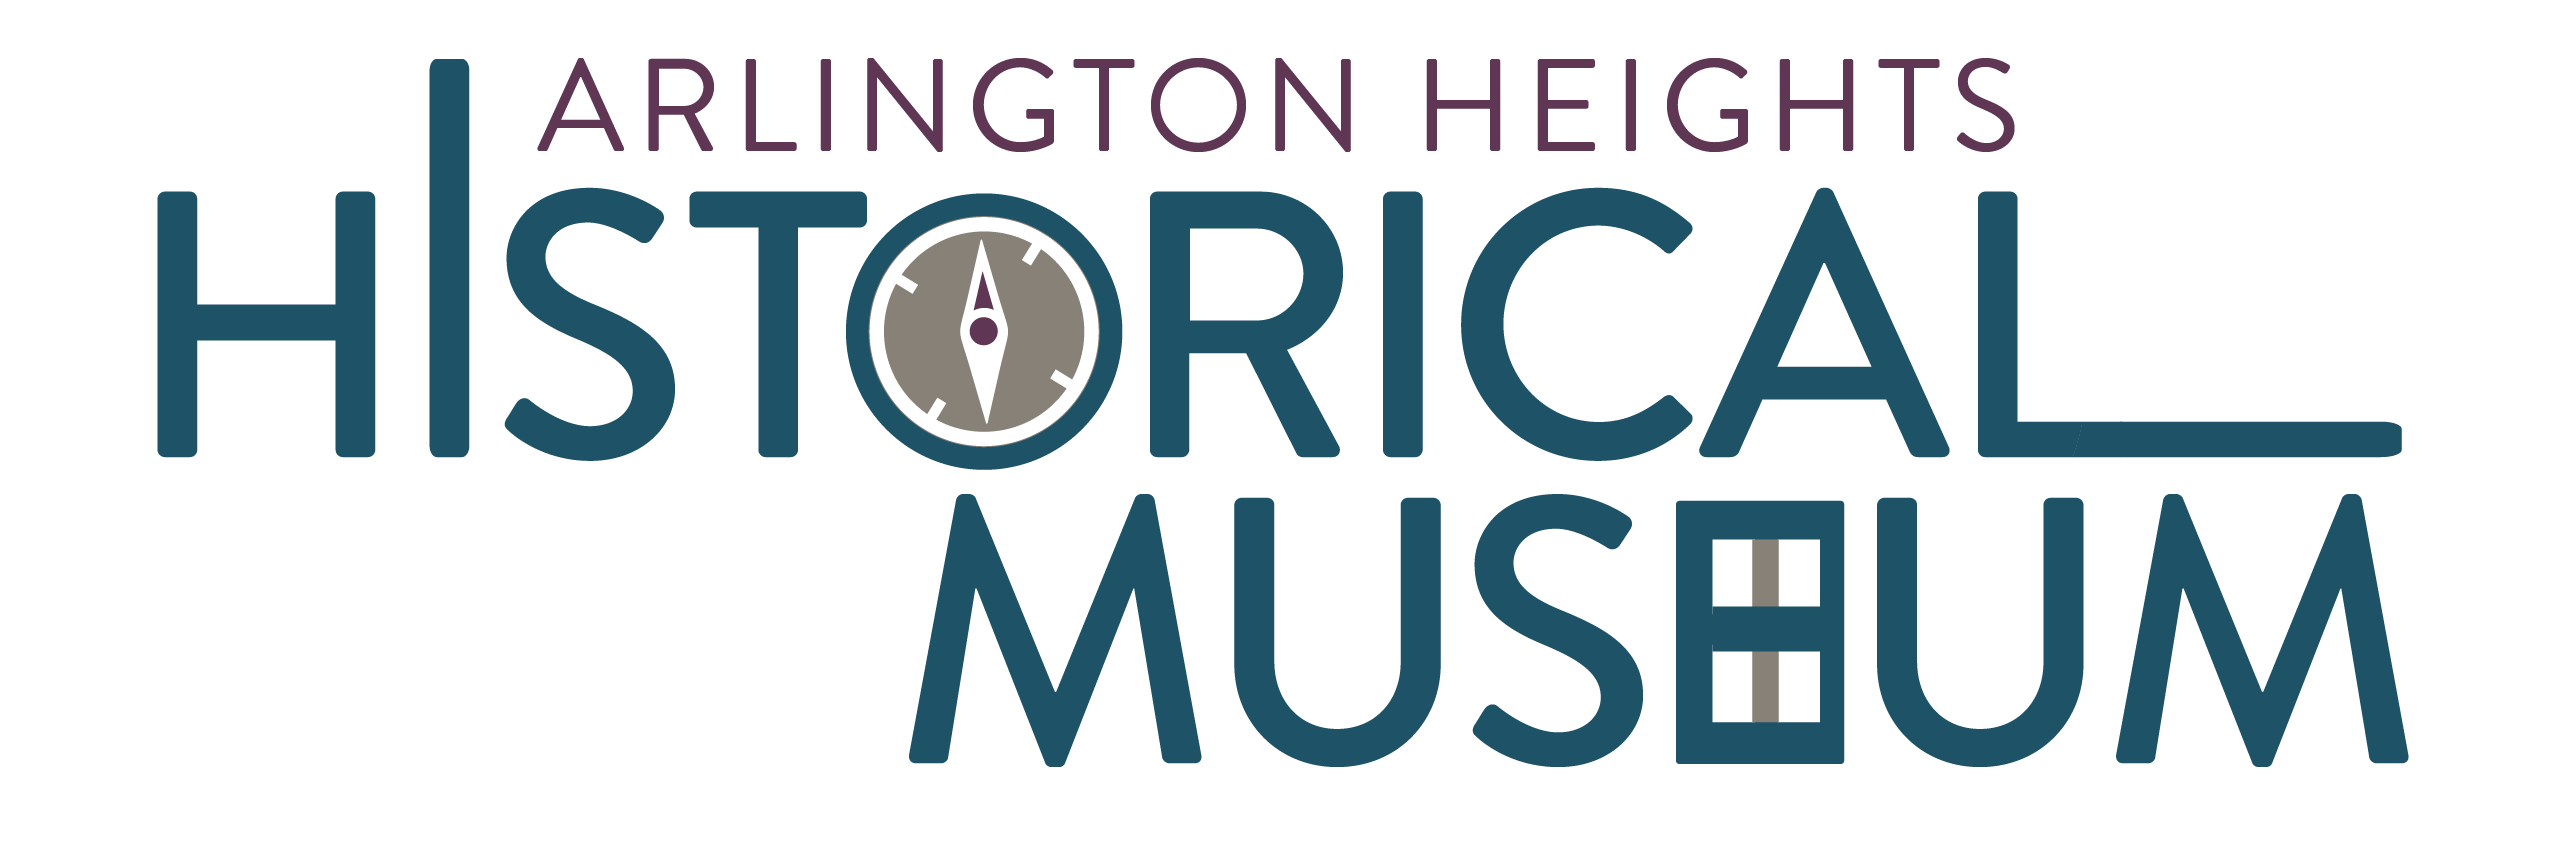 Arlington Heights Historical Museum